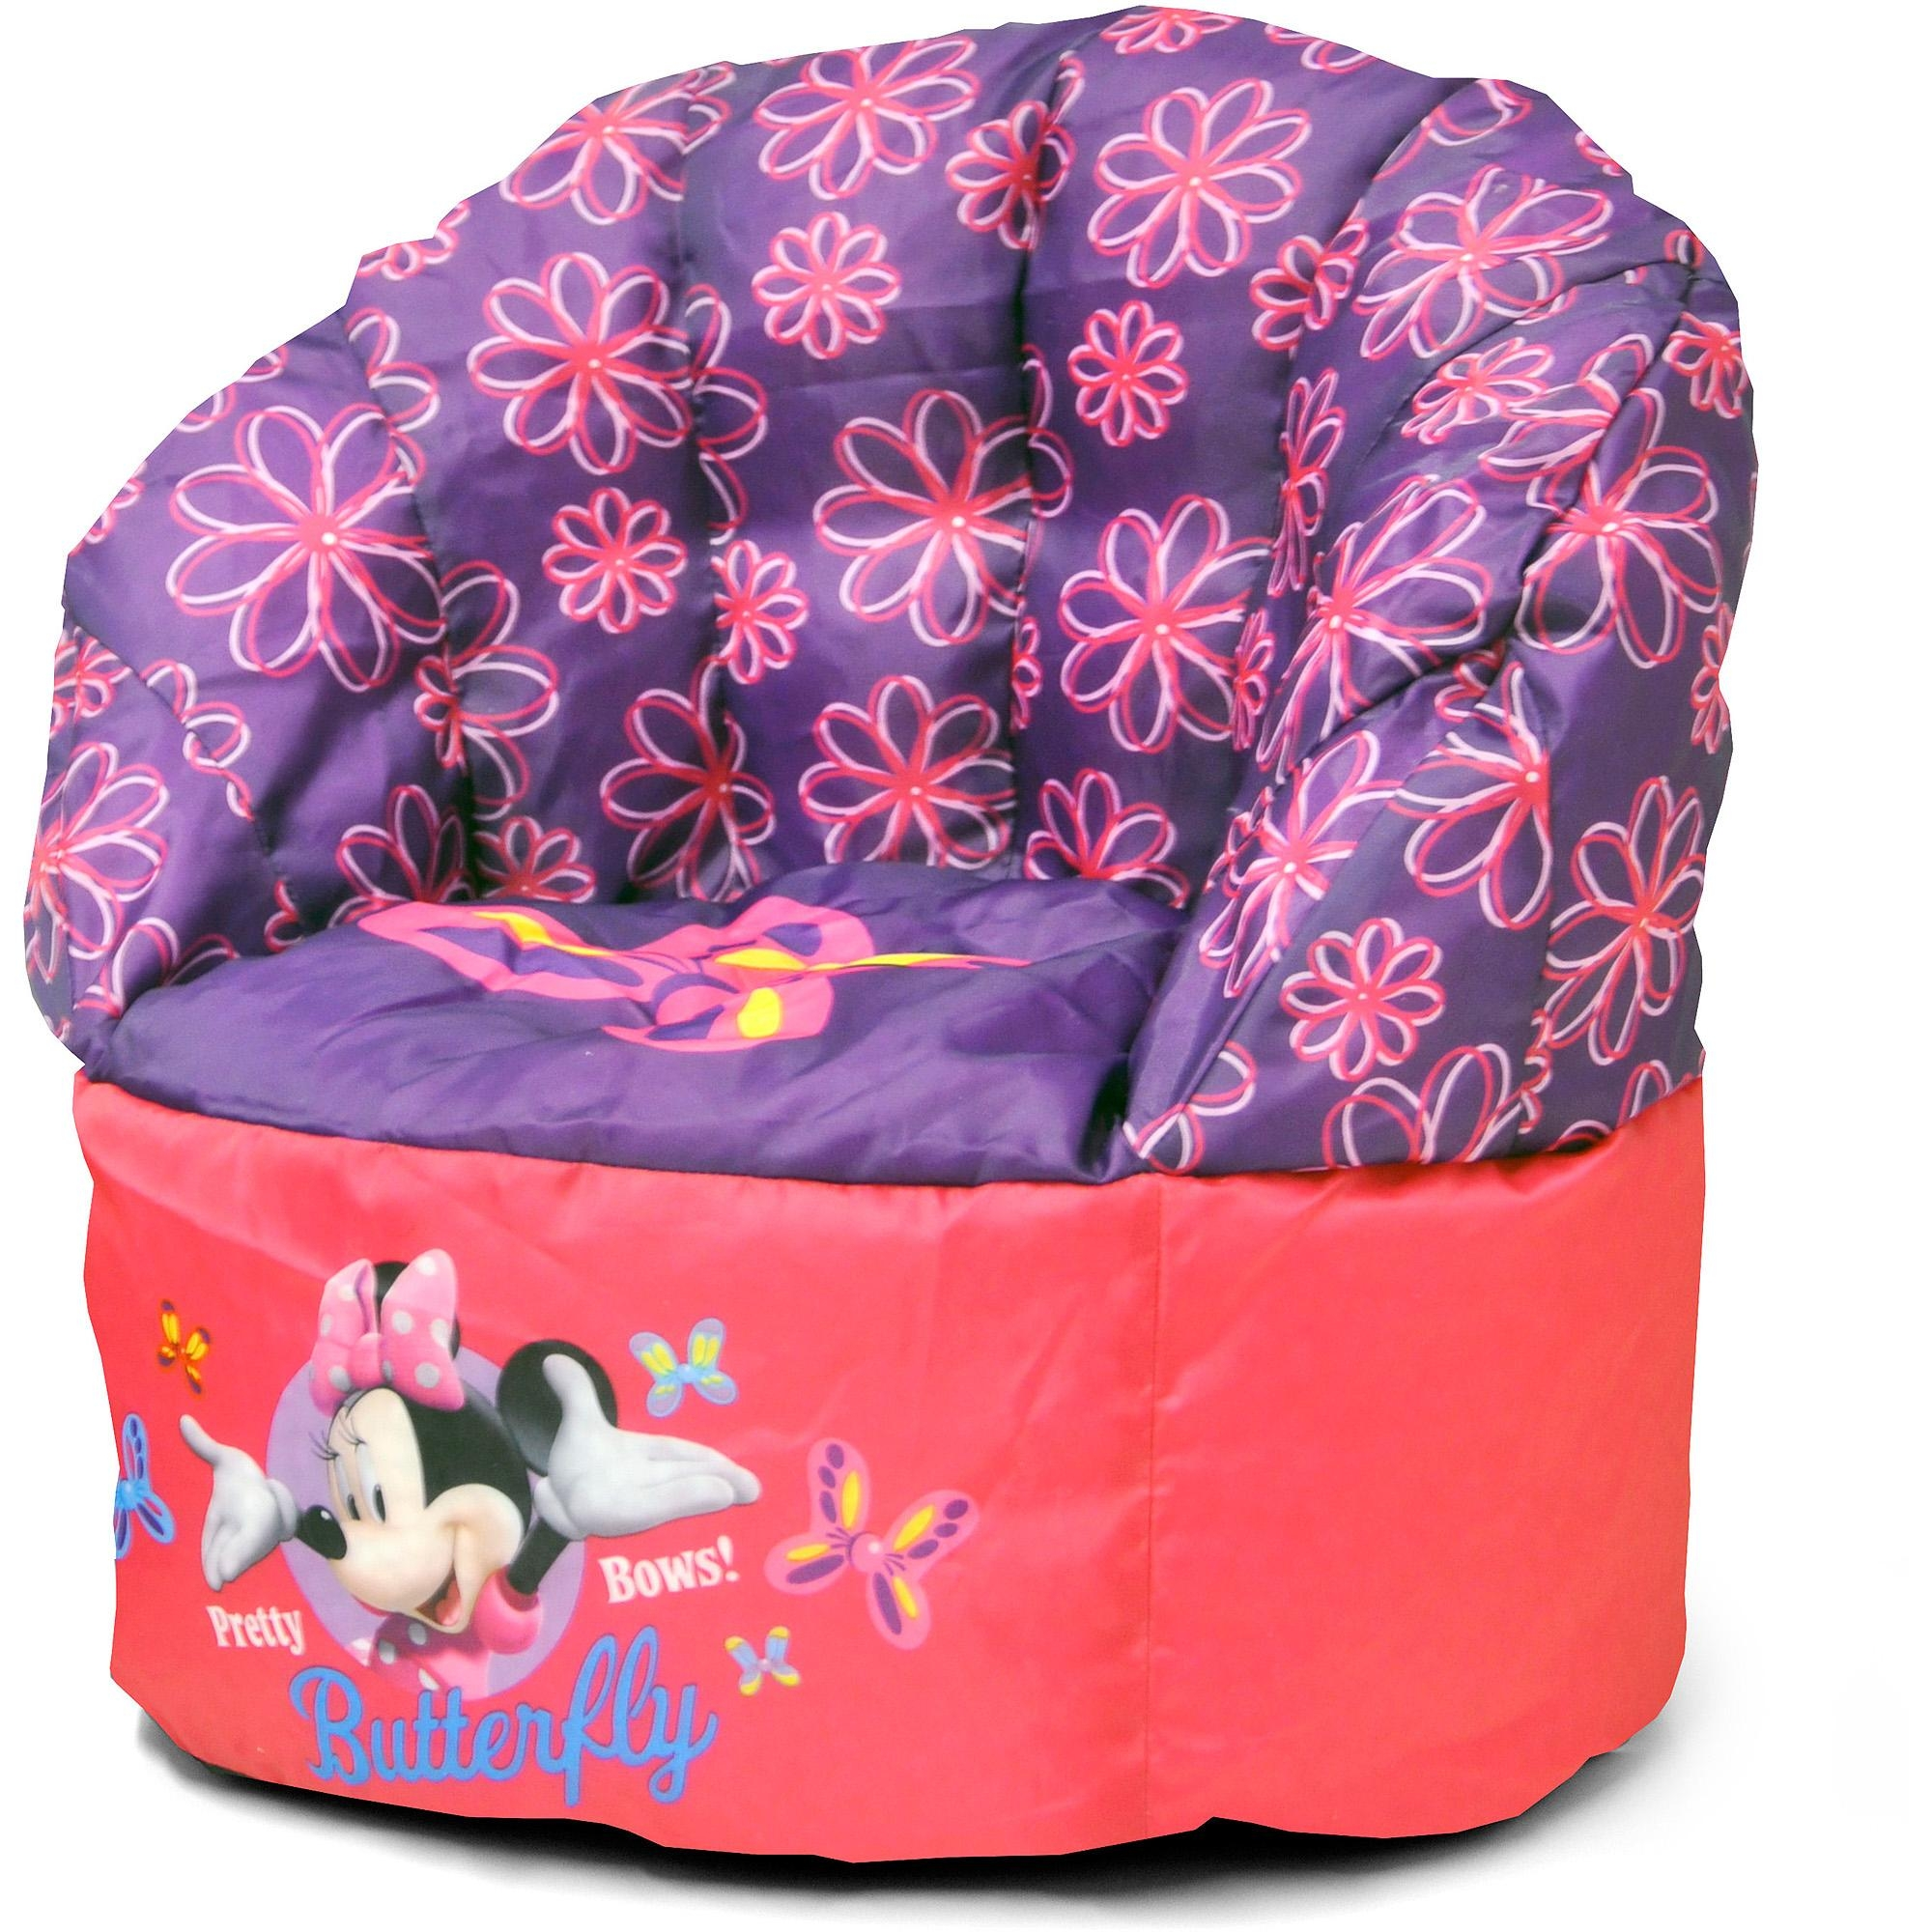 Disney Minnie Mouse Sofa Bean Chair – Walmart With Regard To Disney Sofa Chairs (View 15 of 20)